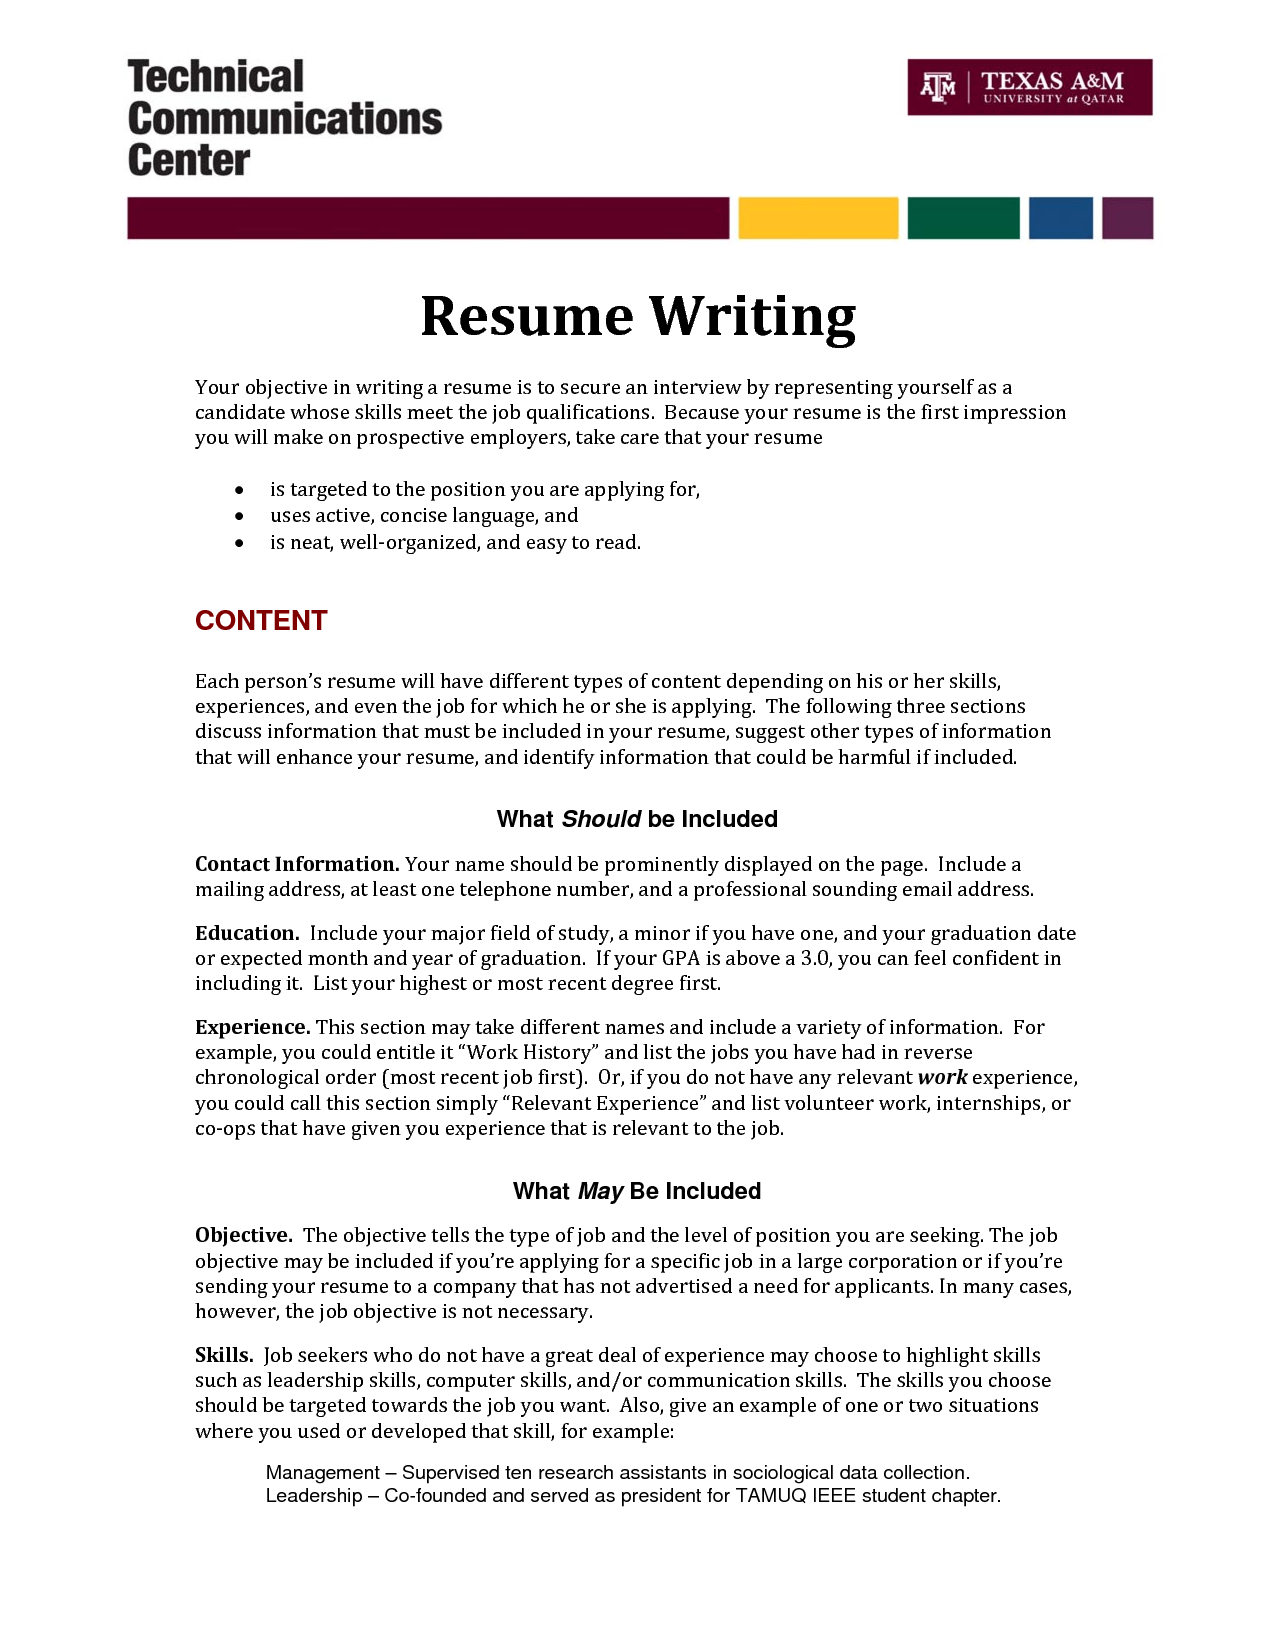 How To Write A Resume?